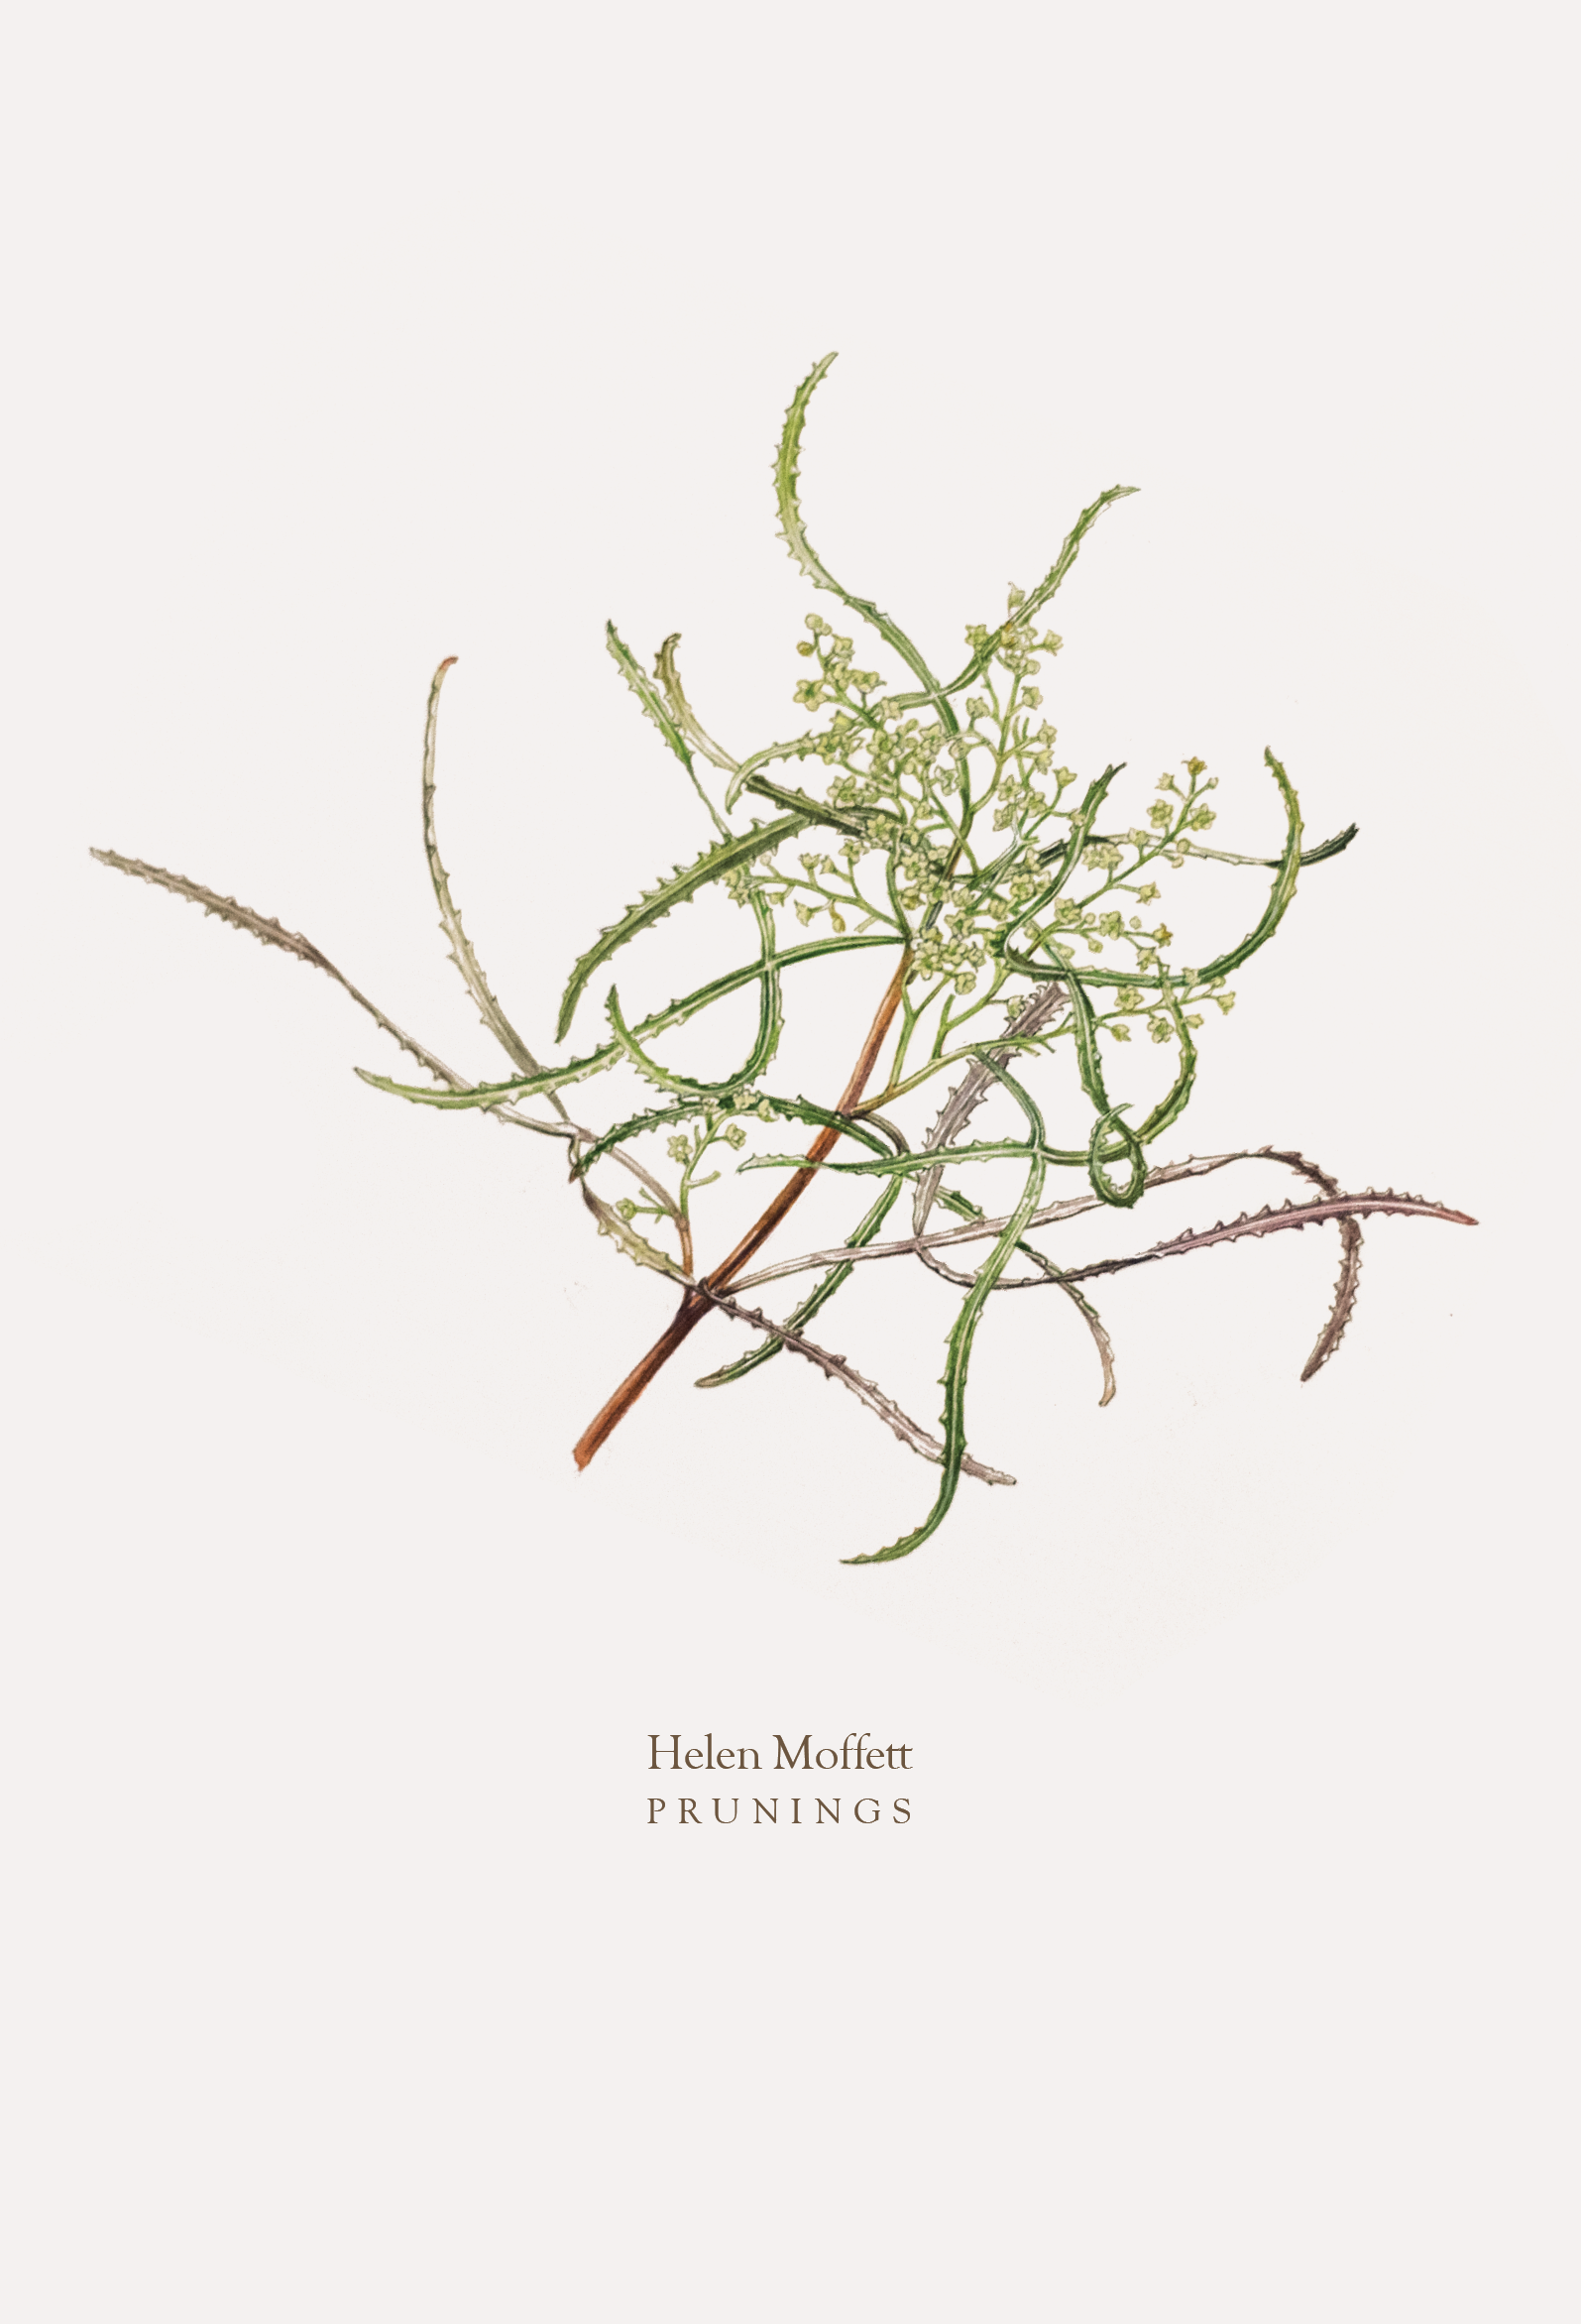 moffett_prunings_cover_20160815.png